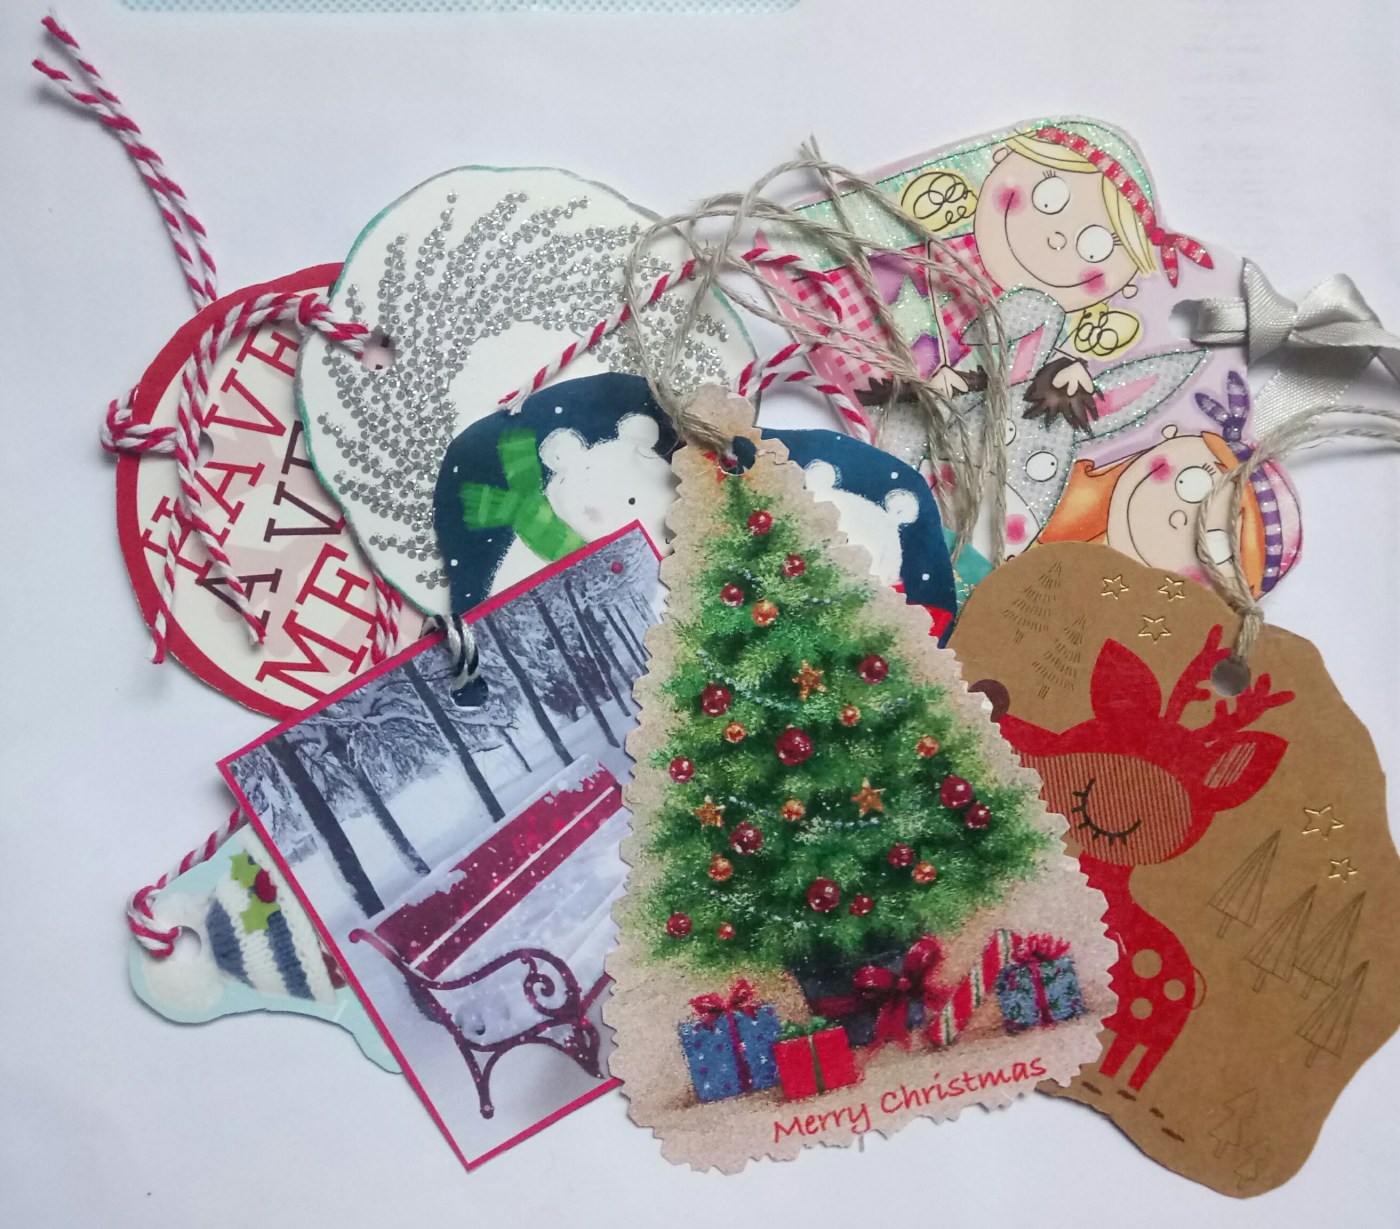 new from old recycle your greetings cards into next year